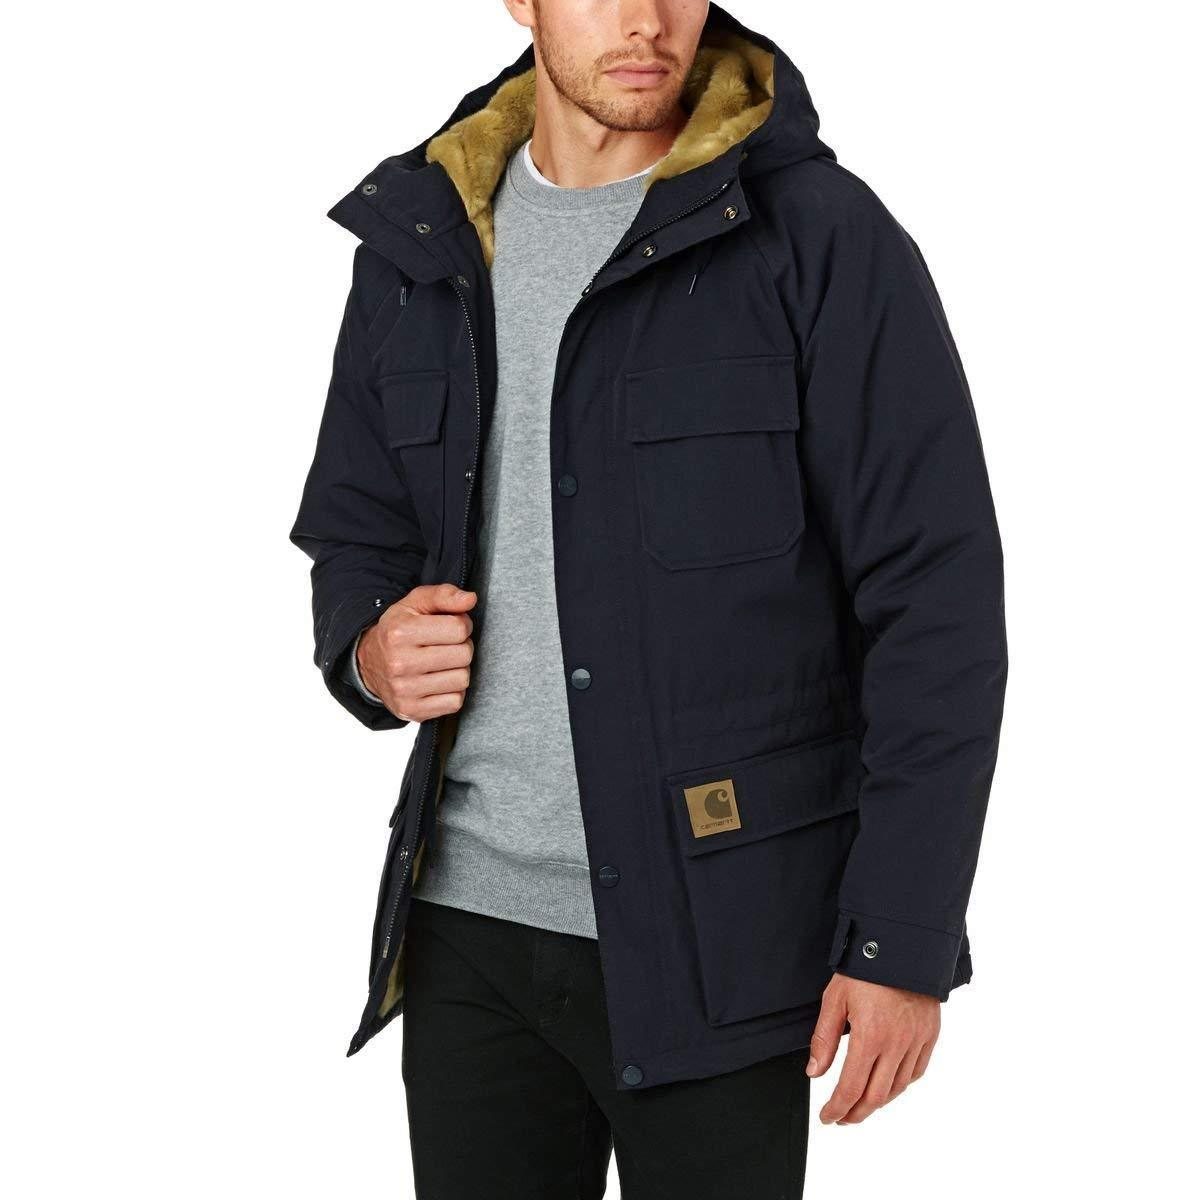 Carhartt 235 Uomo Parka Jacket Giacca I02187 Mentley Wip List 1UxvEHqwE